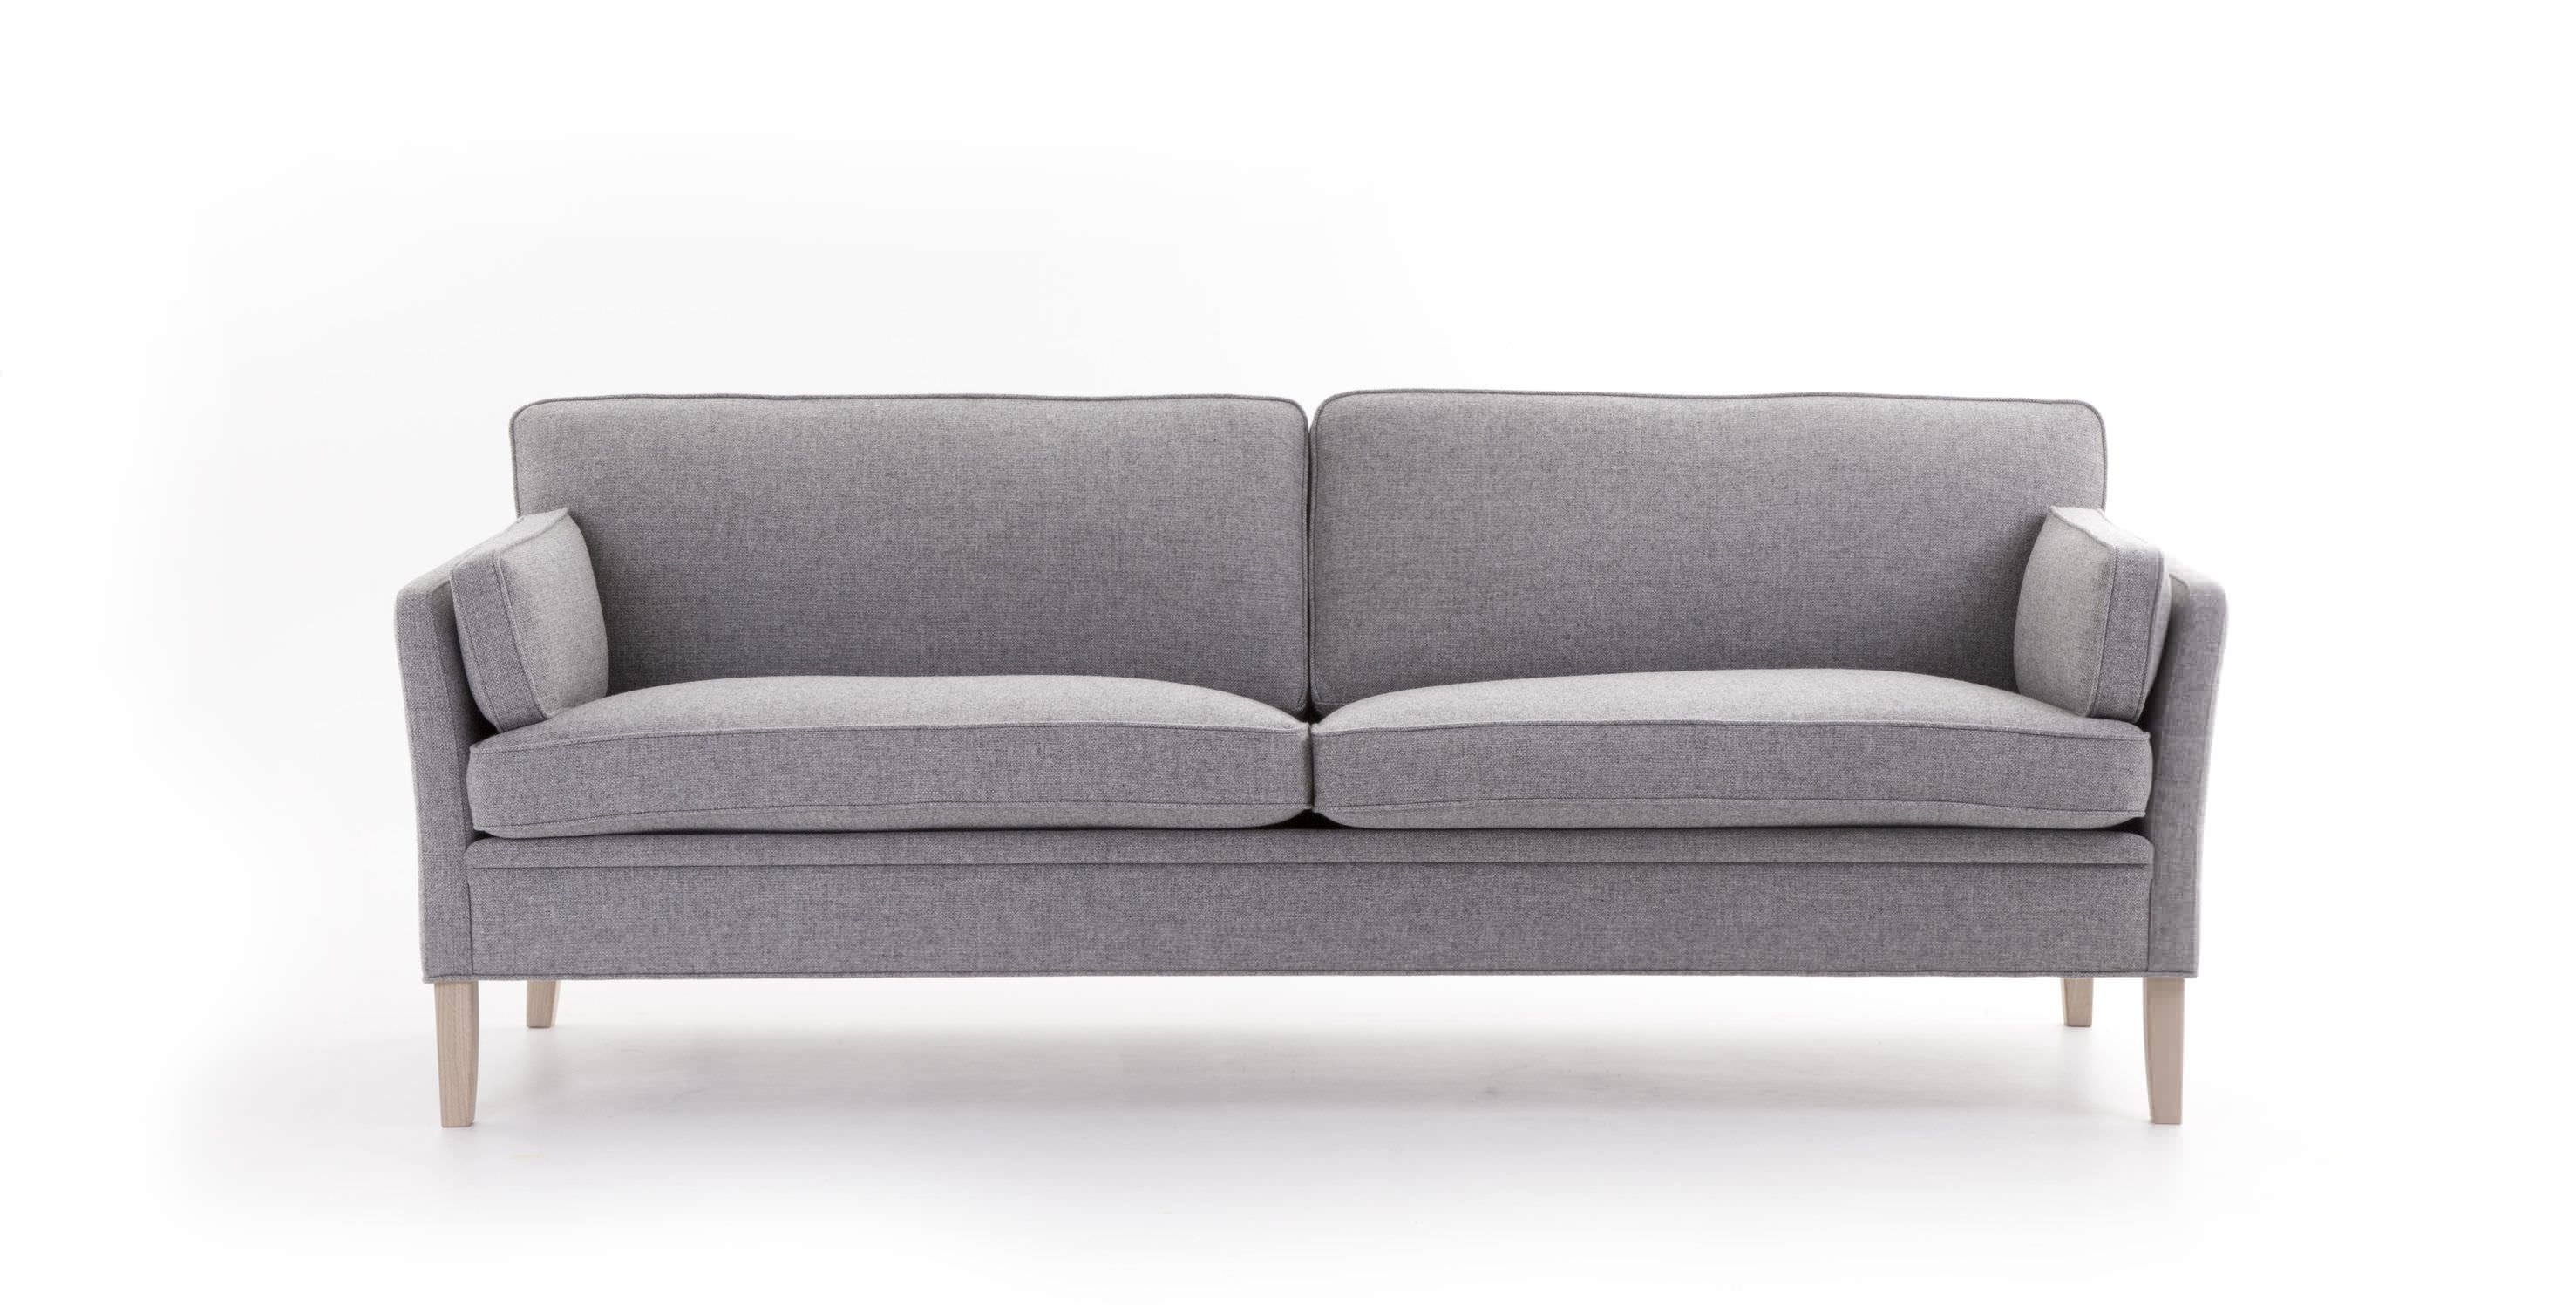 Sofas With Removable Washable Covers – Fjellkjeden Inside Sofas With Washable Covers (View 10 of 10)